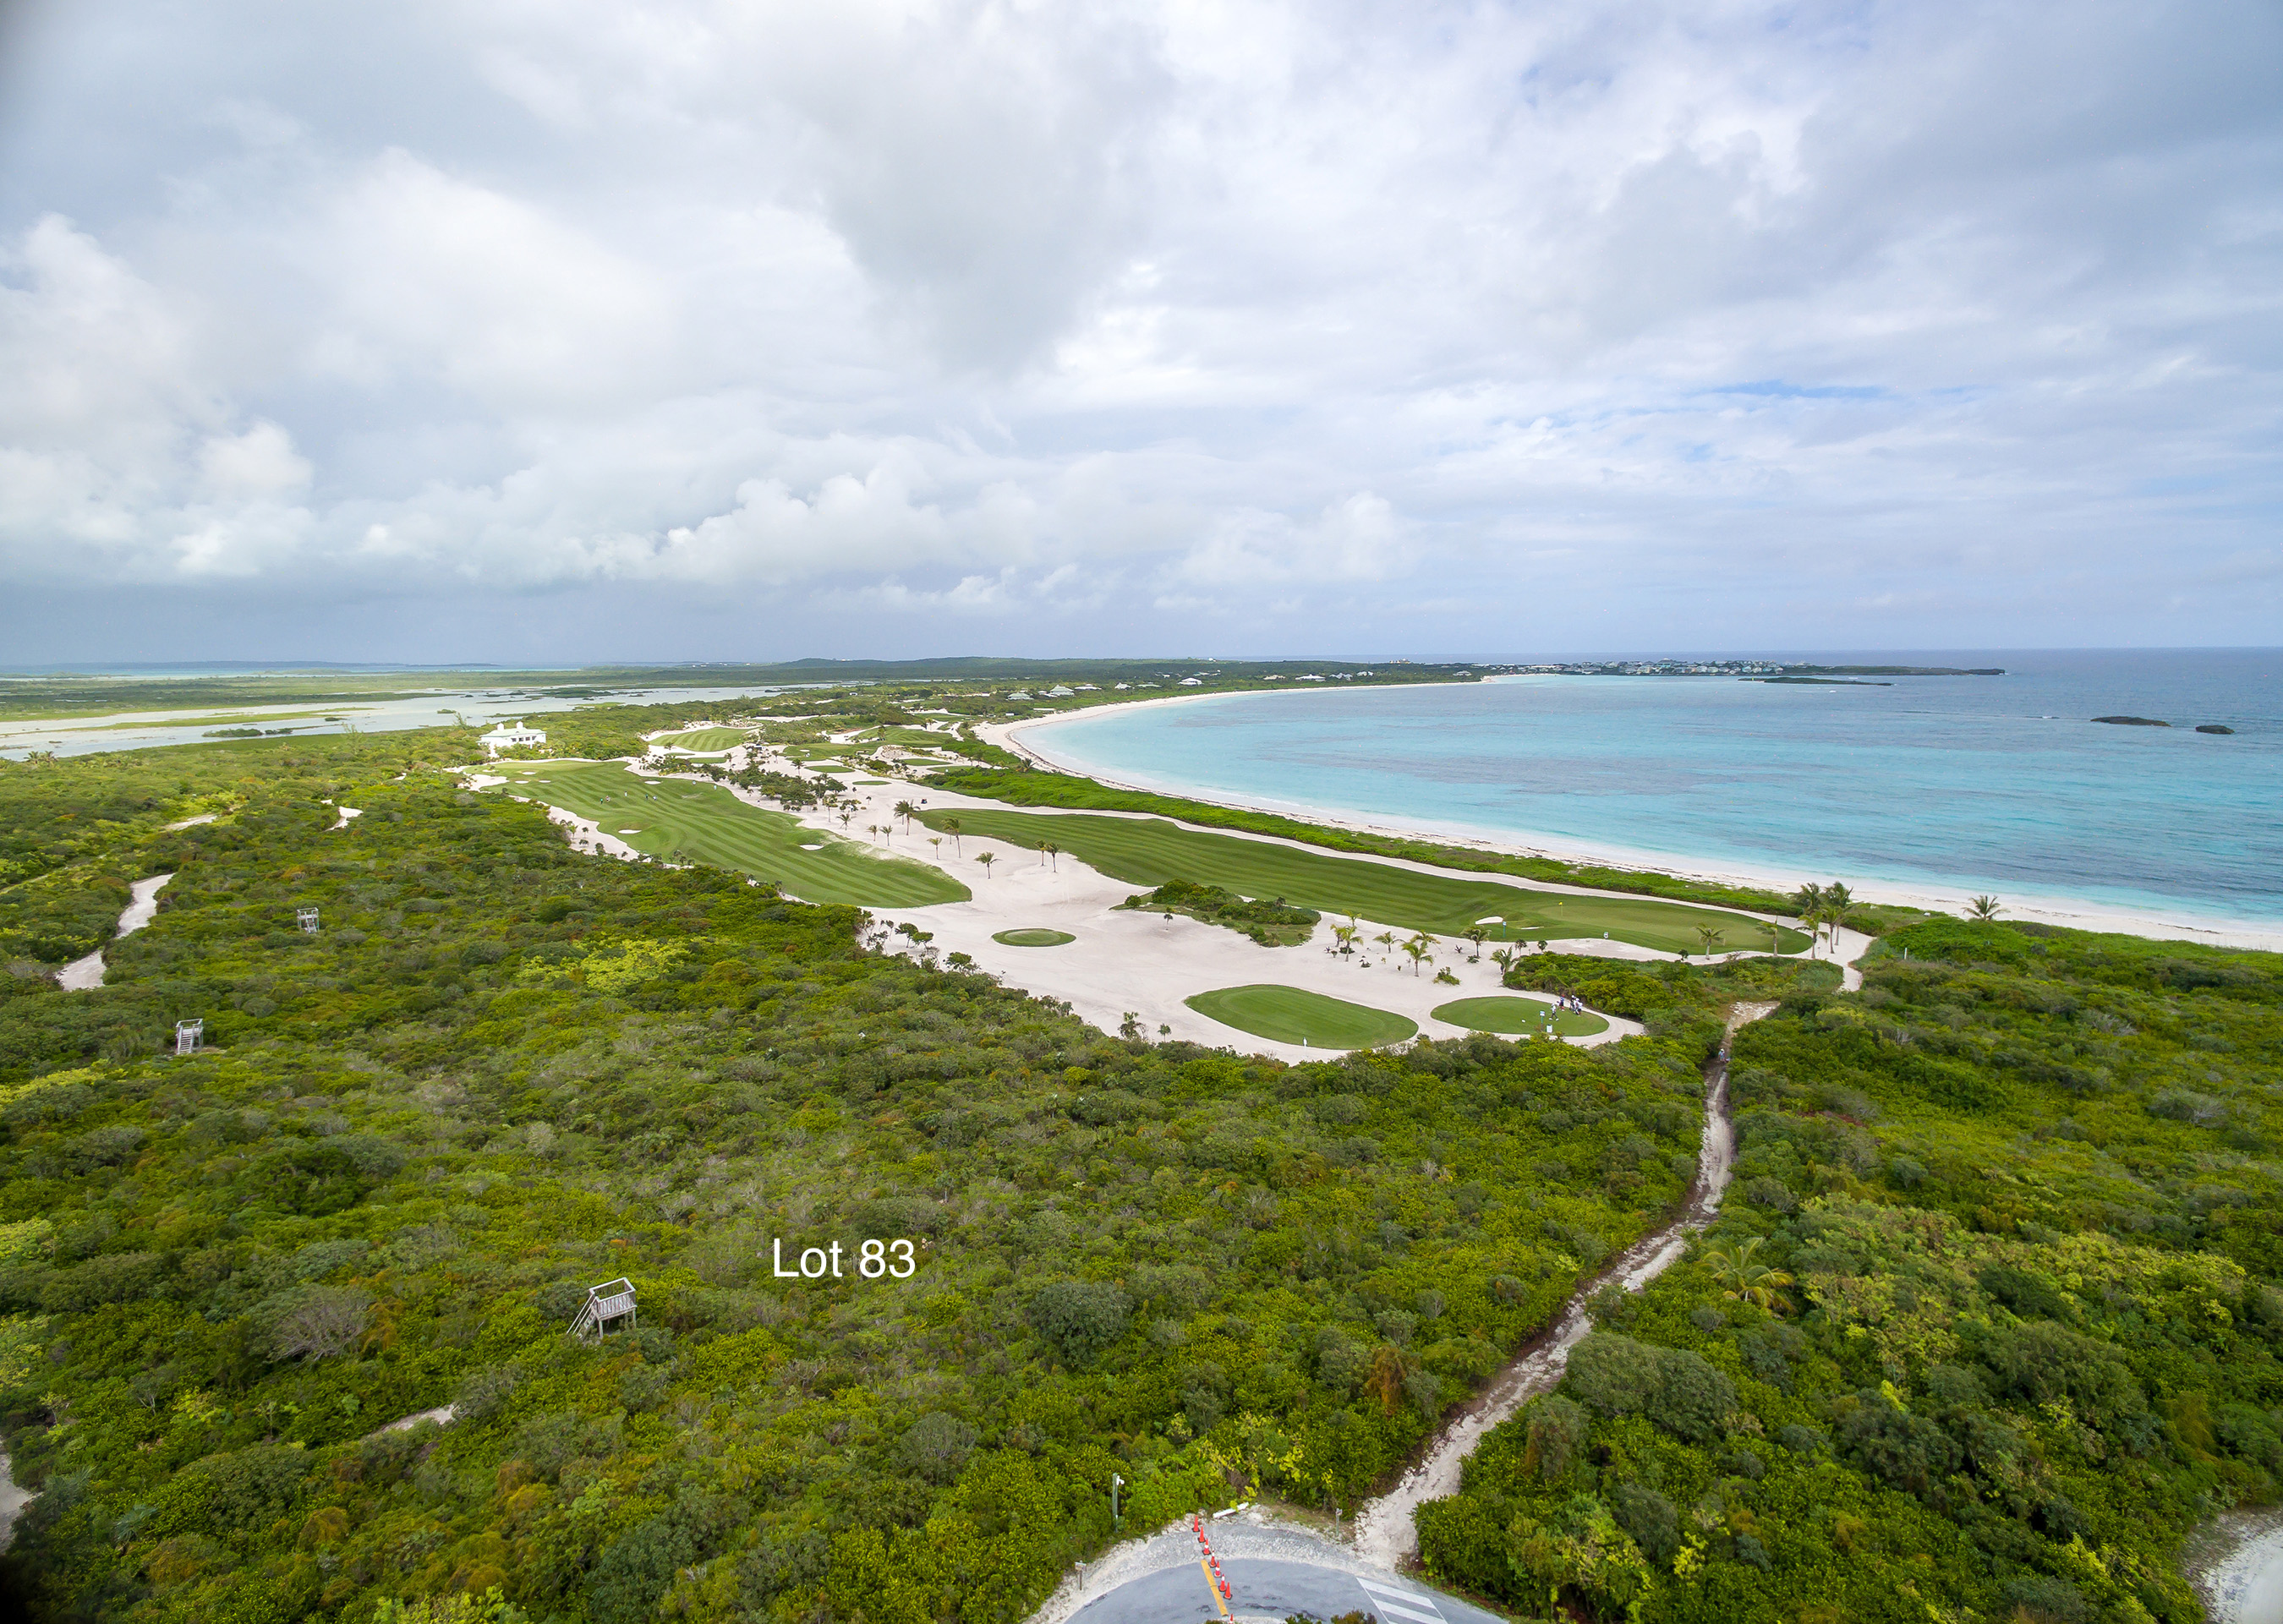 Land for Sale at Lot 83 The Abaco Club on Winding Bay - MLS 33183 Winding Bay, Abaco, Bahamas